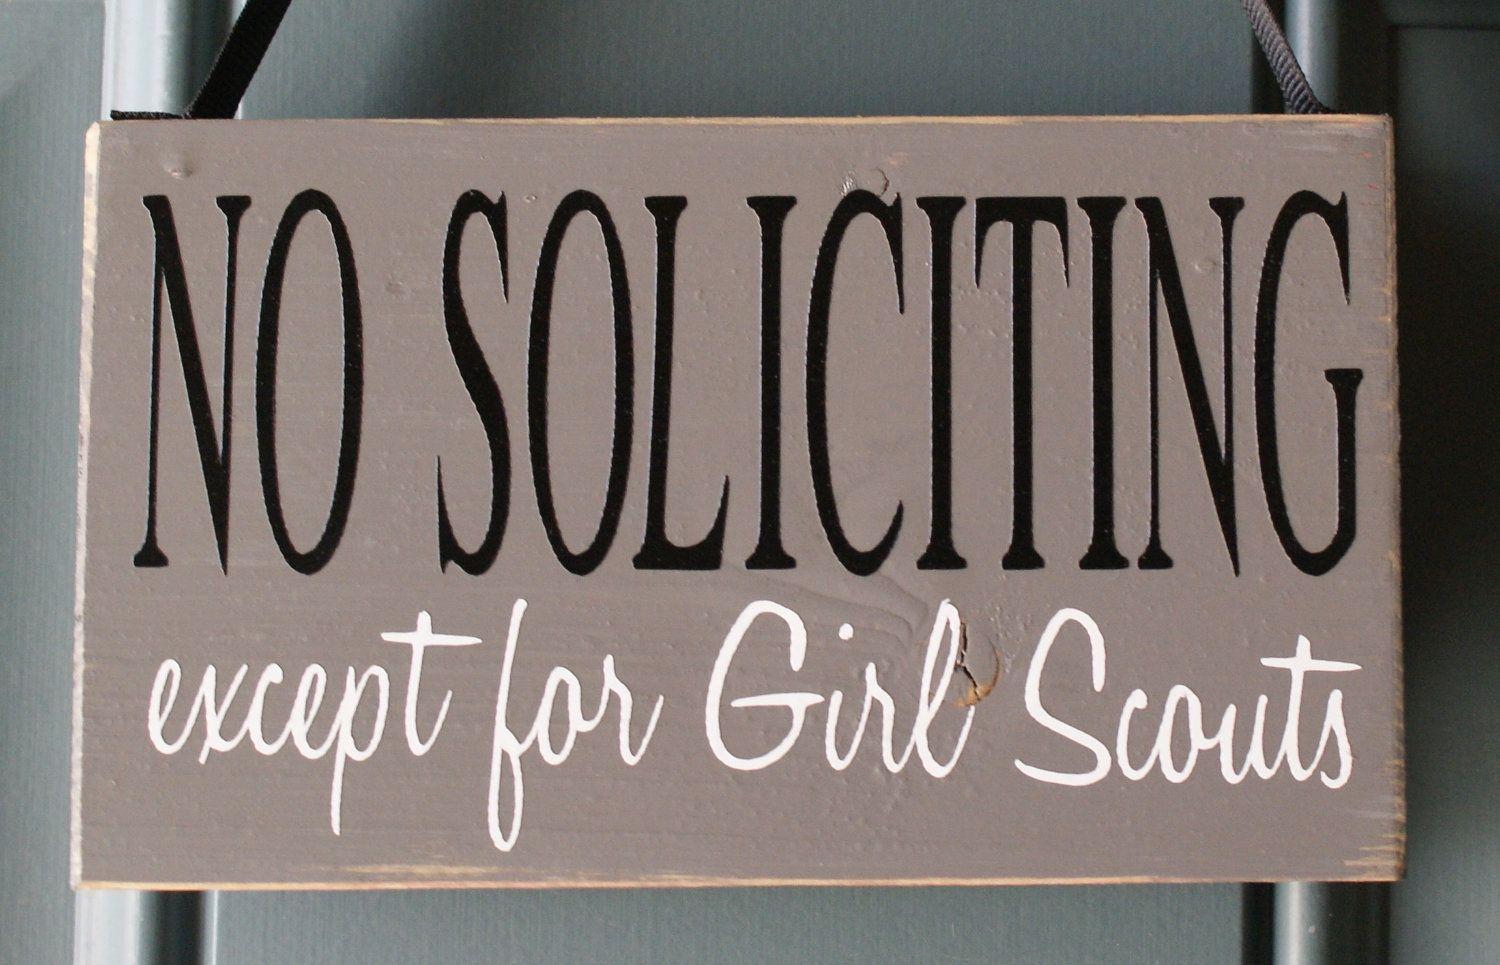 No Soliciting except for Girl Scouts.